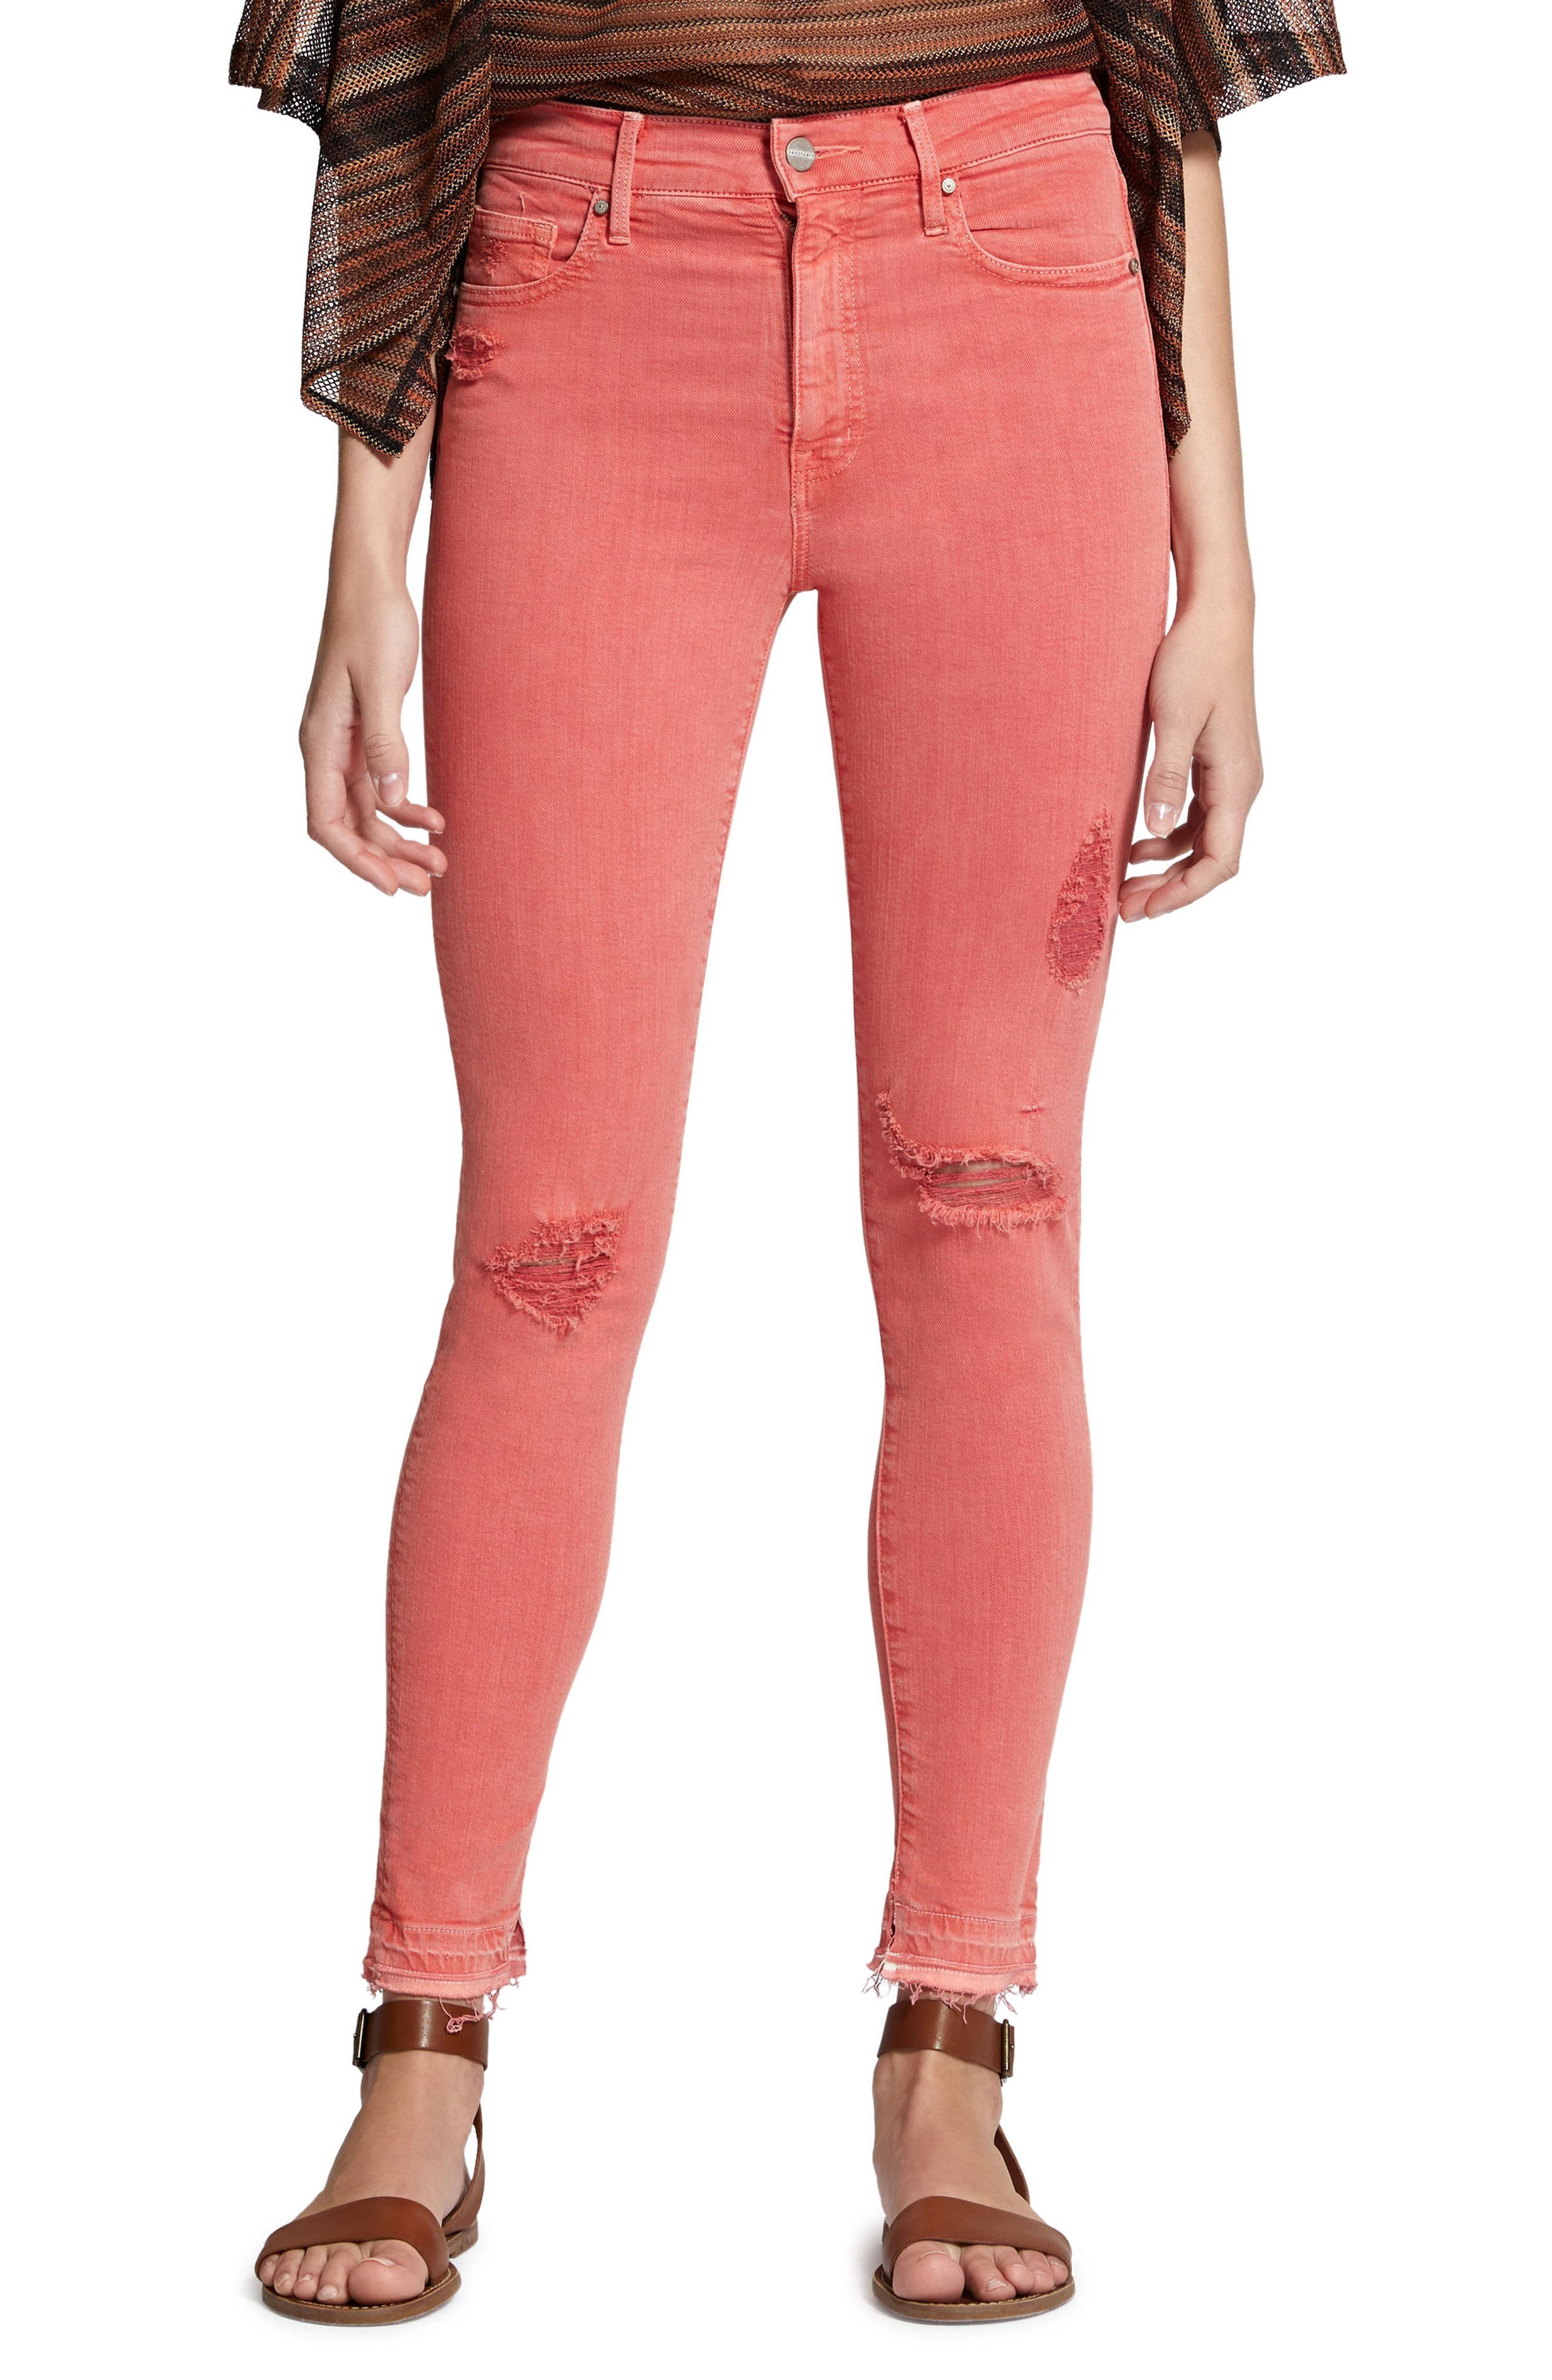 Robbie High Waist Ankle Jeans,                         Main,                         color, Chili Wash